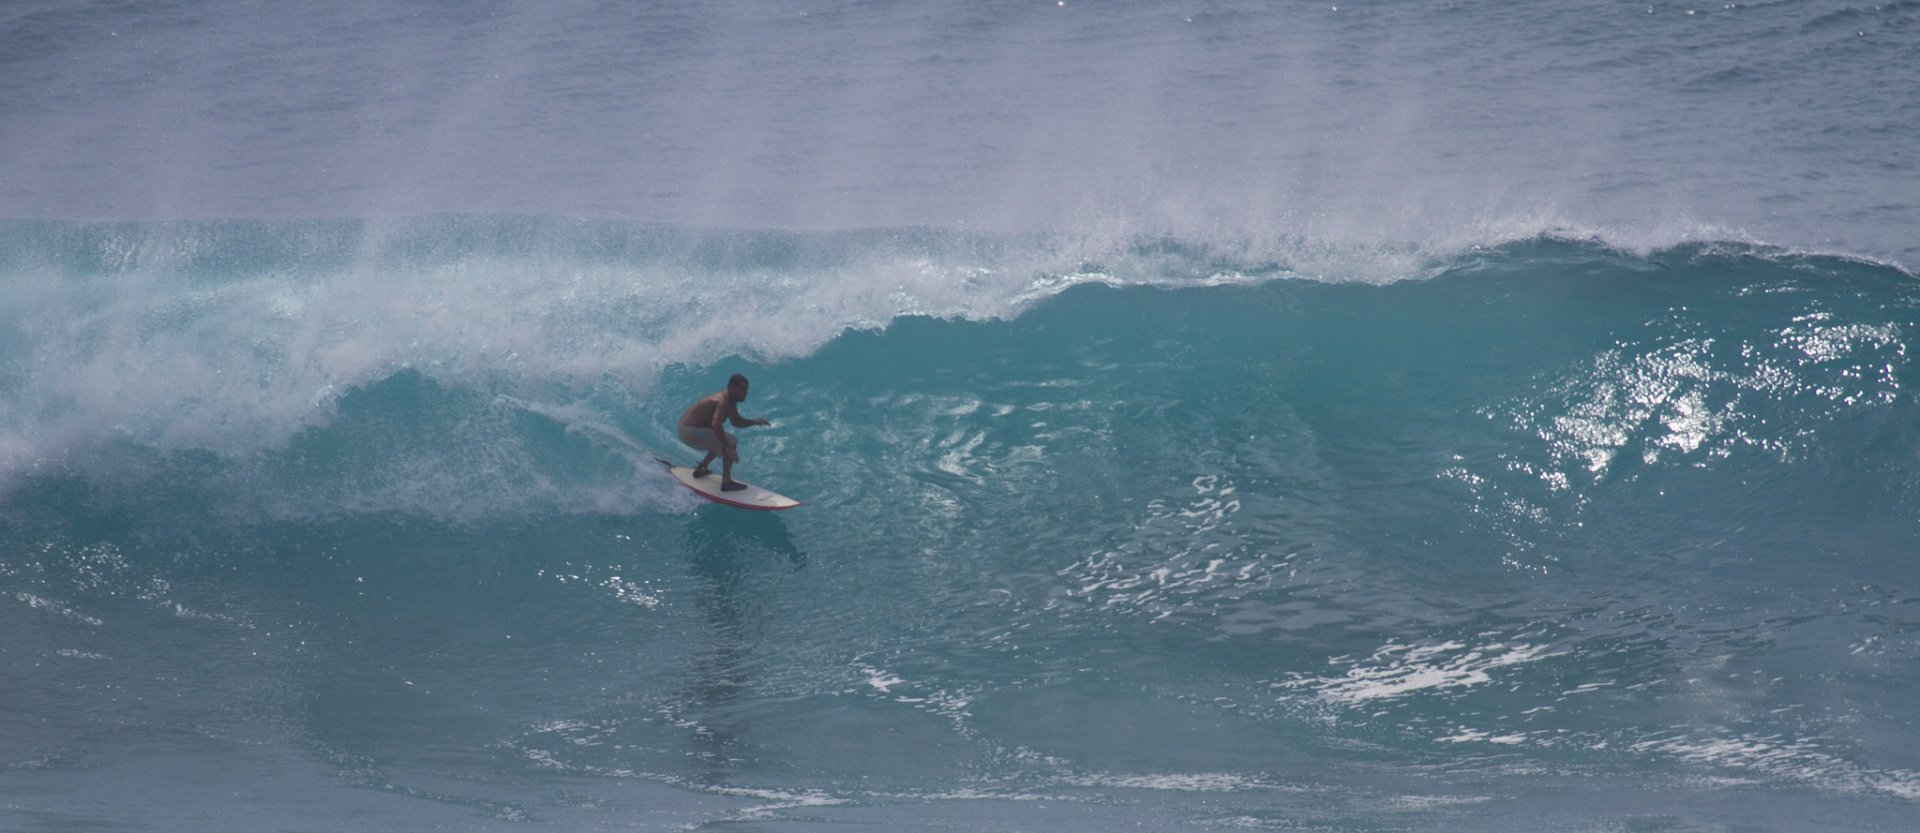 Justin Rayboun's photo of Uluwatu